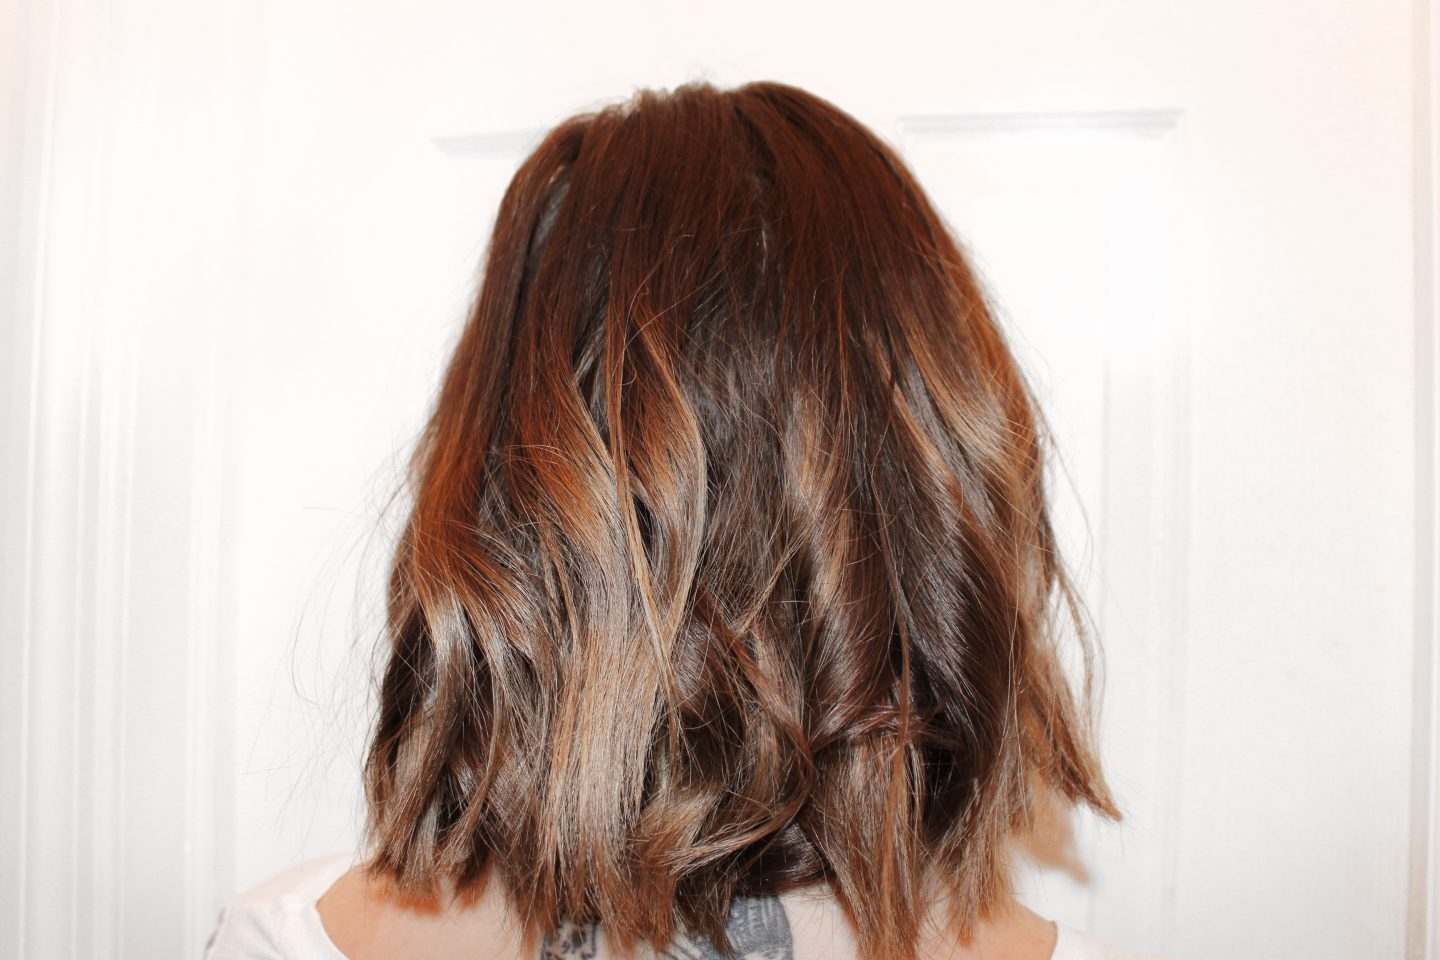 How I Style My Short Hair – Messy Waves